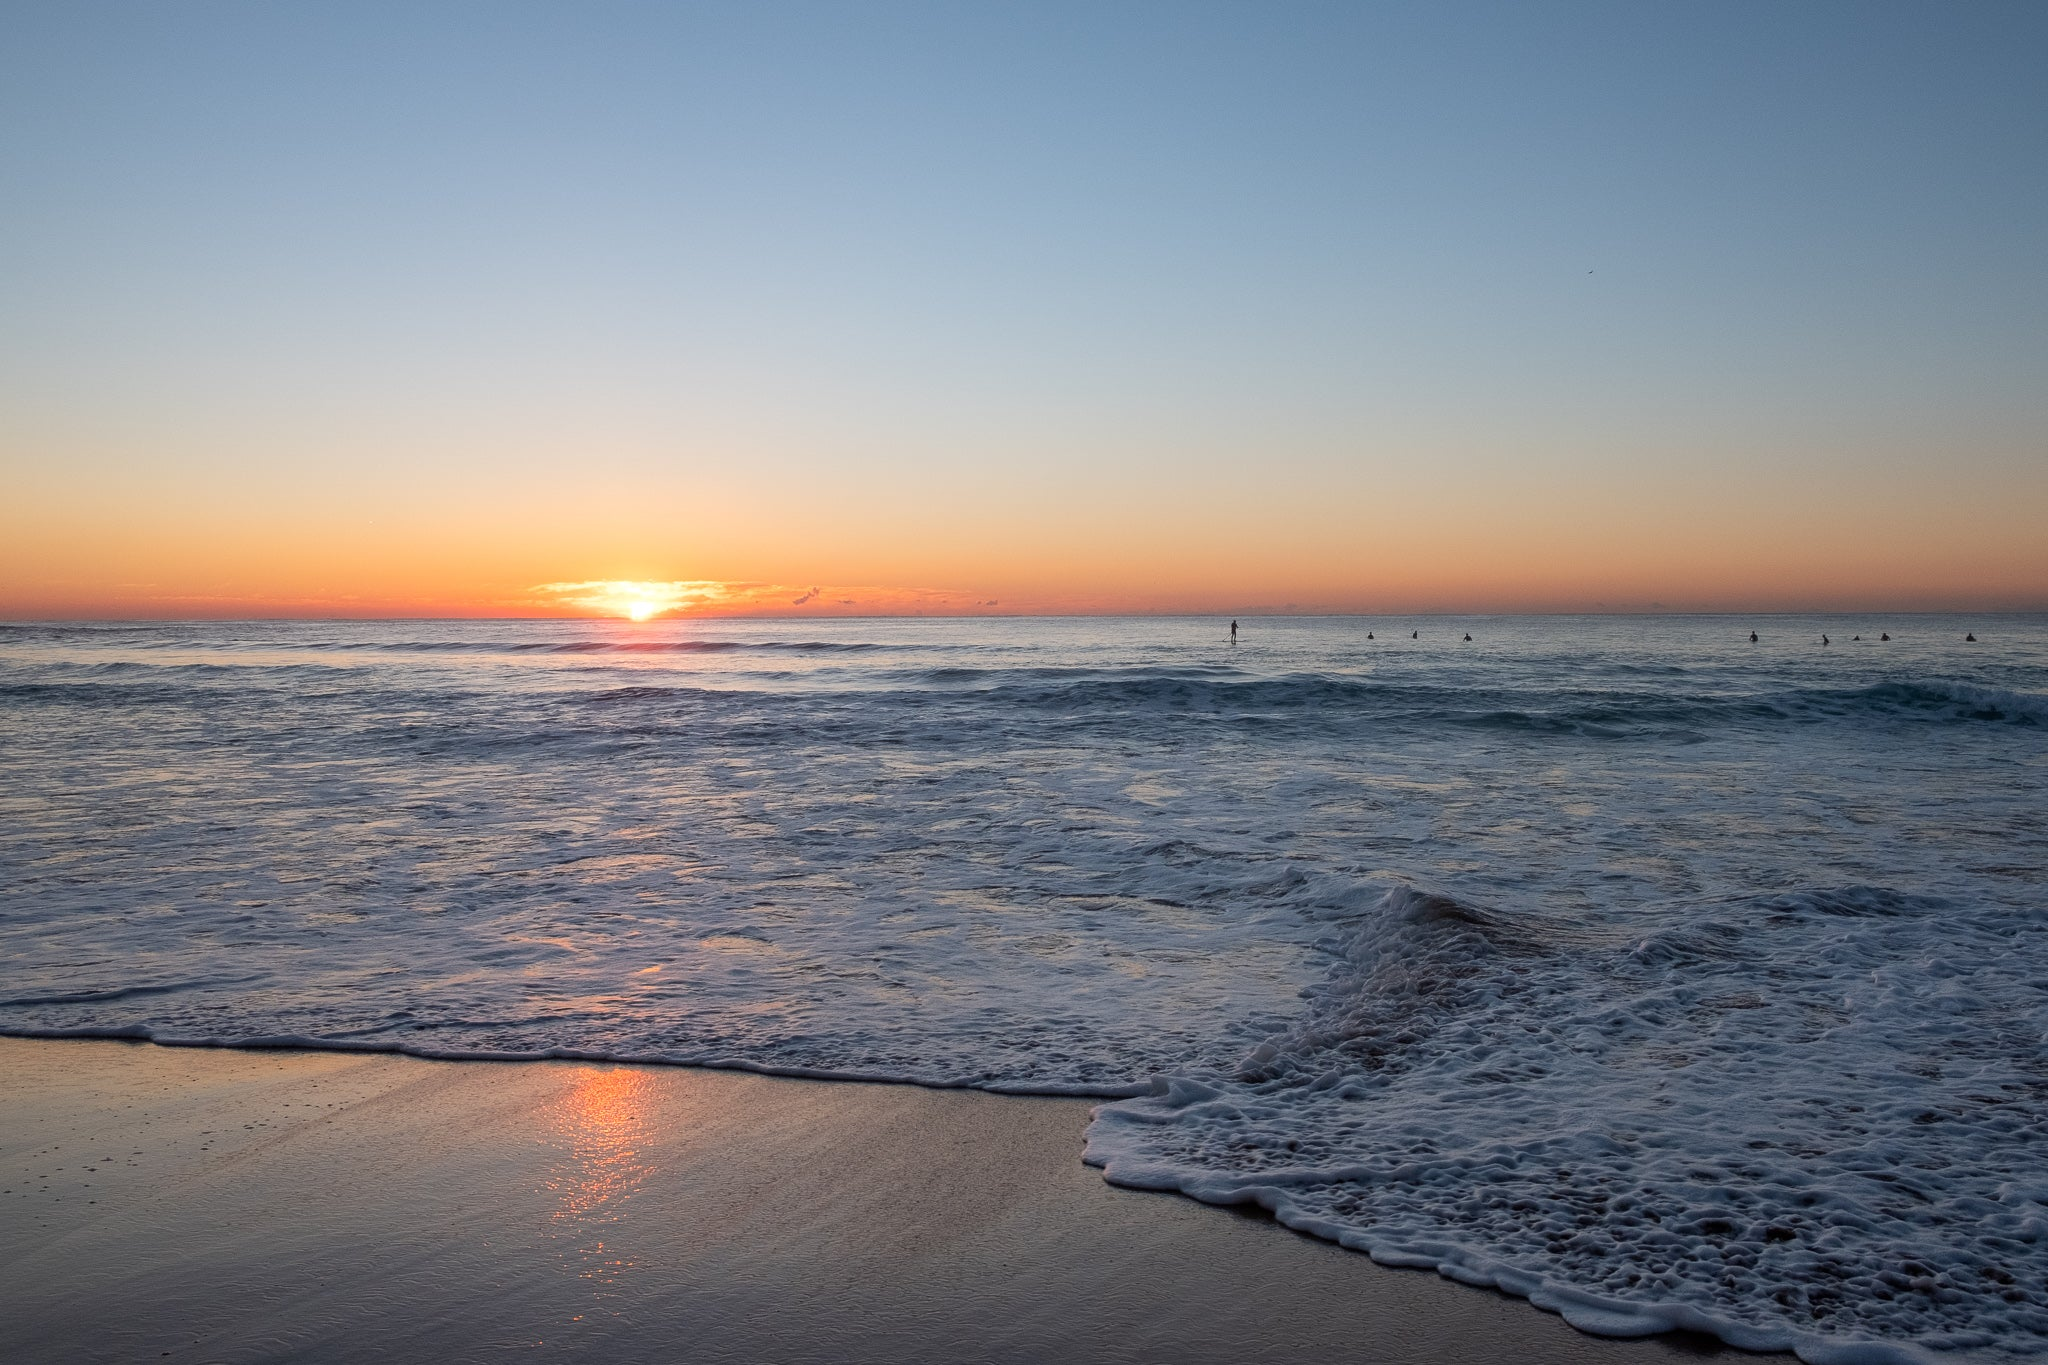 Sunrise photo from the 29th July 2019 at Manly Beach in Sydney